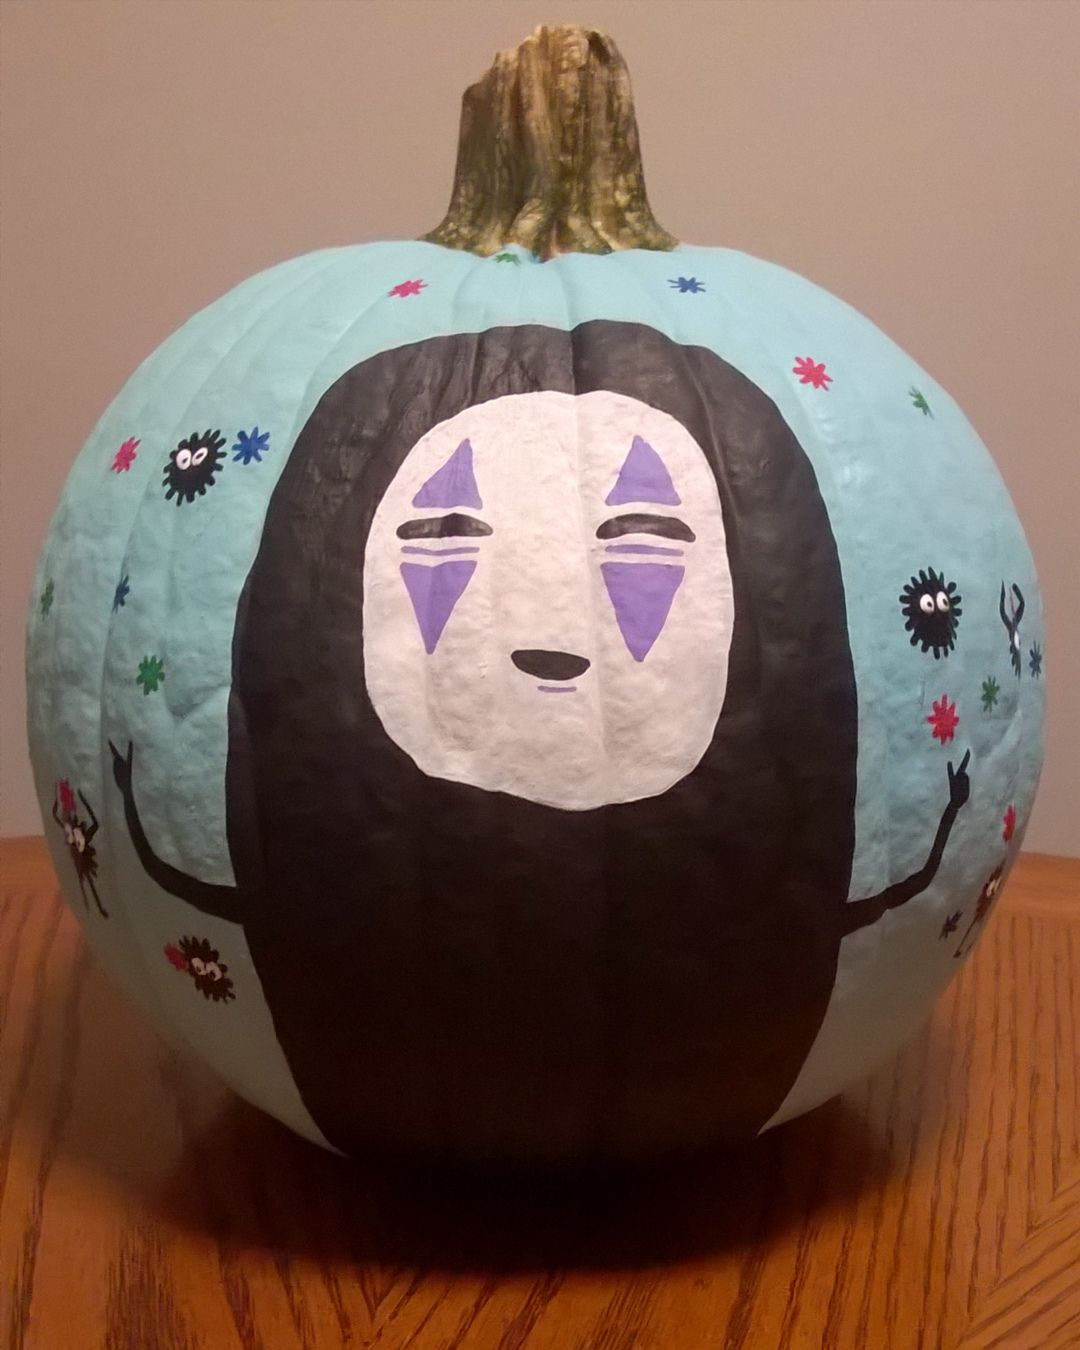 No Face Painted Pumpkin From Spirited Away Decorating With Studio Ghibli Is A Great Choice F Pumpkin Halloween Decorations Painted Pumpkins Pumpkin Decorating